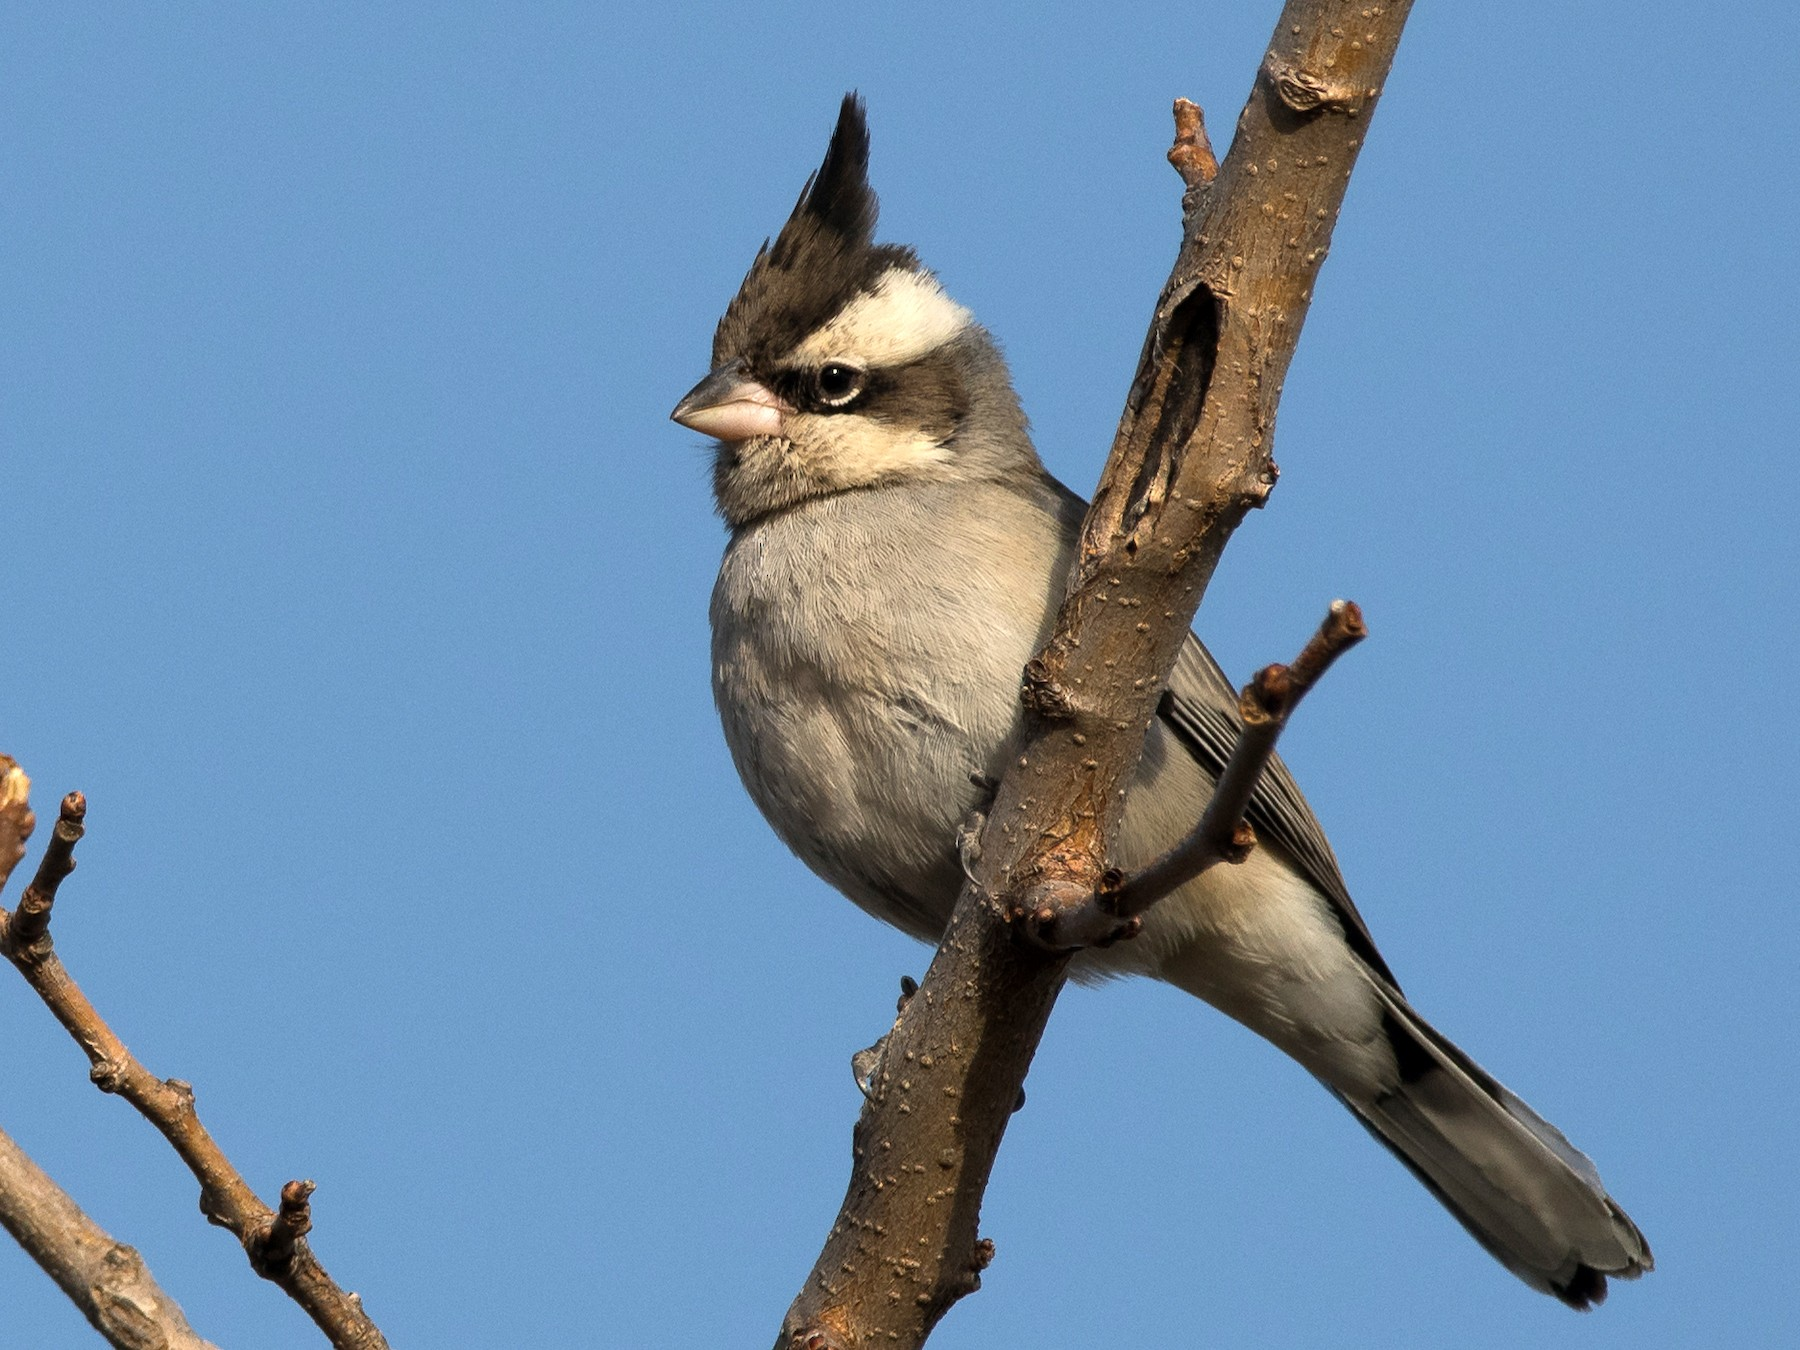 Black-crested Finch - Pablo Re